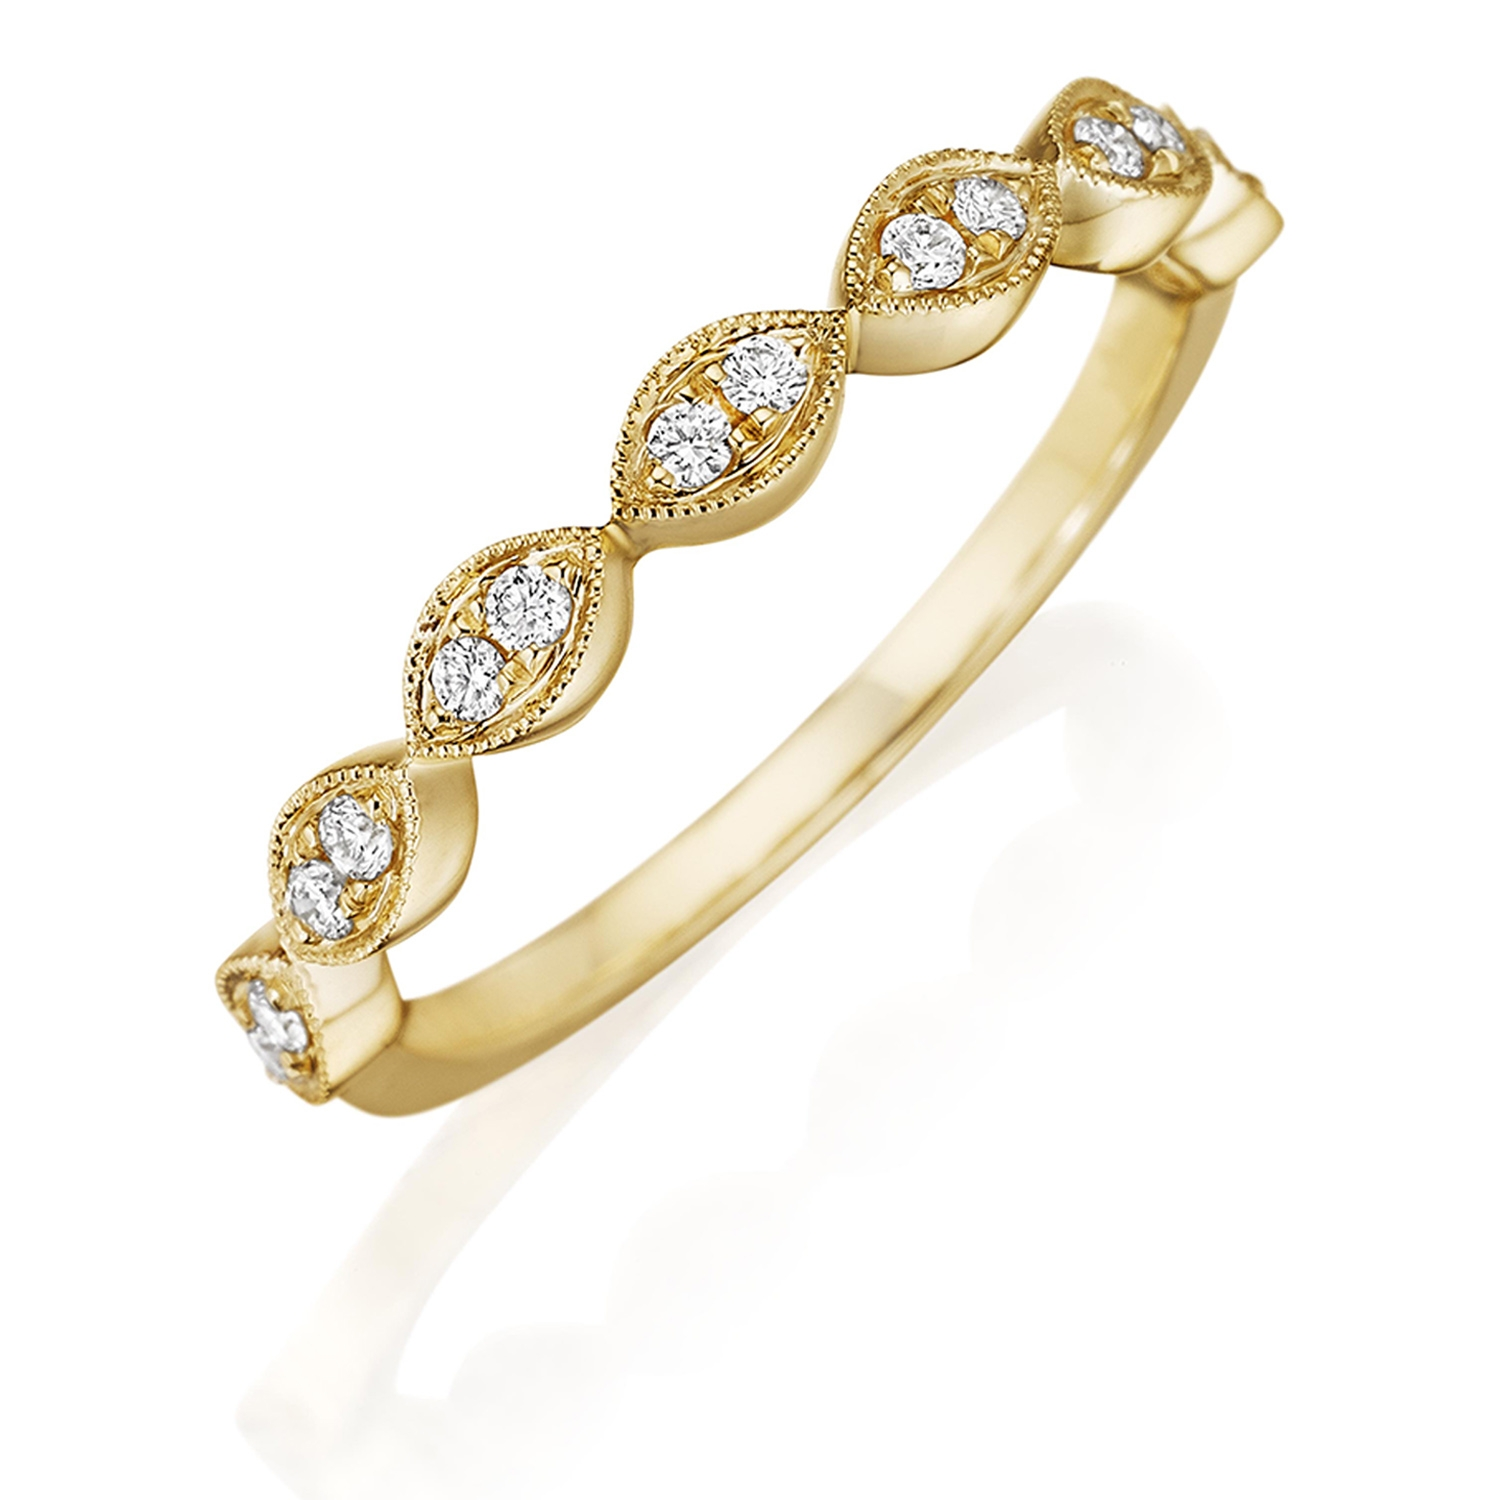 Henri Daussi R42-3 Yellow Gold Bead Set Diamond Band with Miligrain Detail